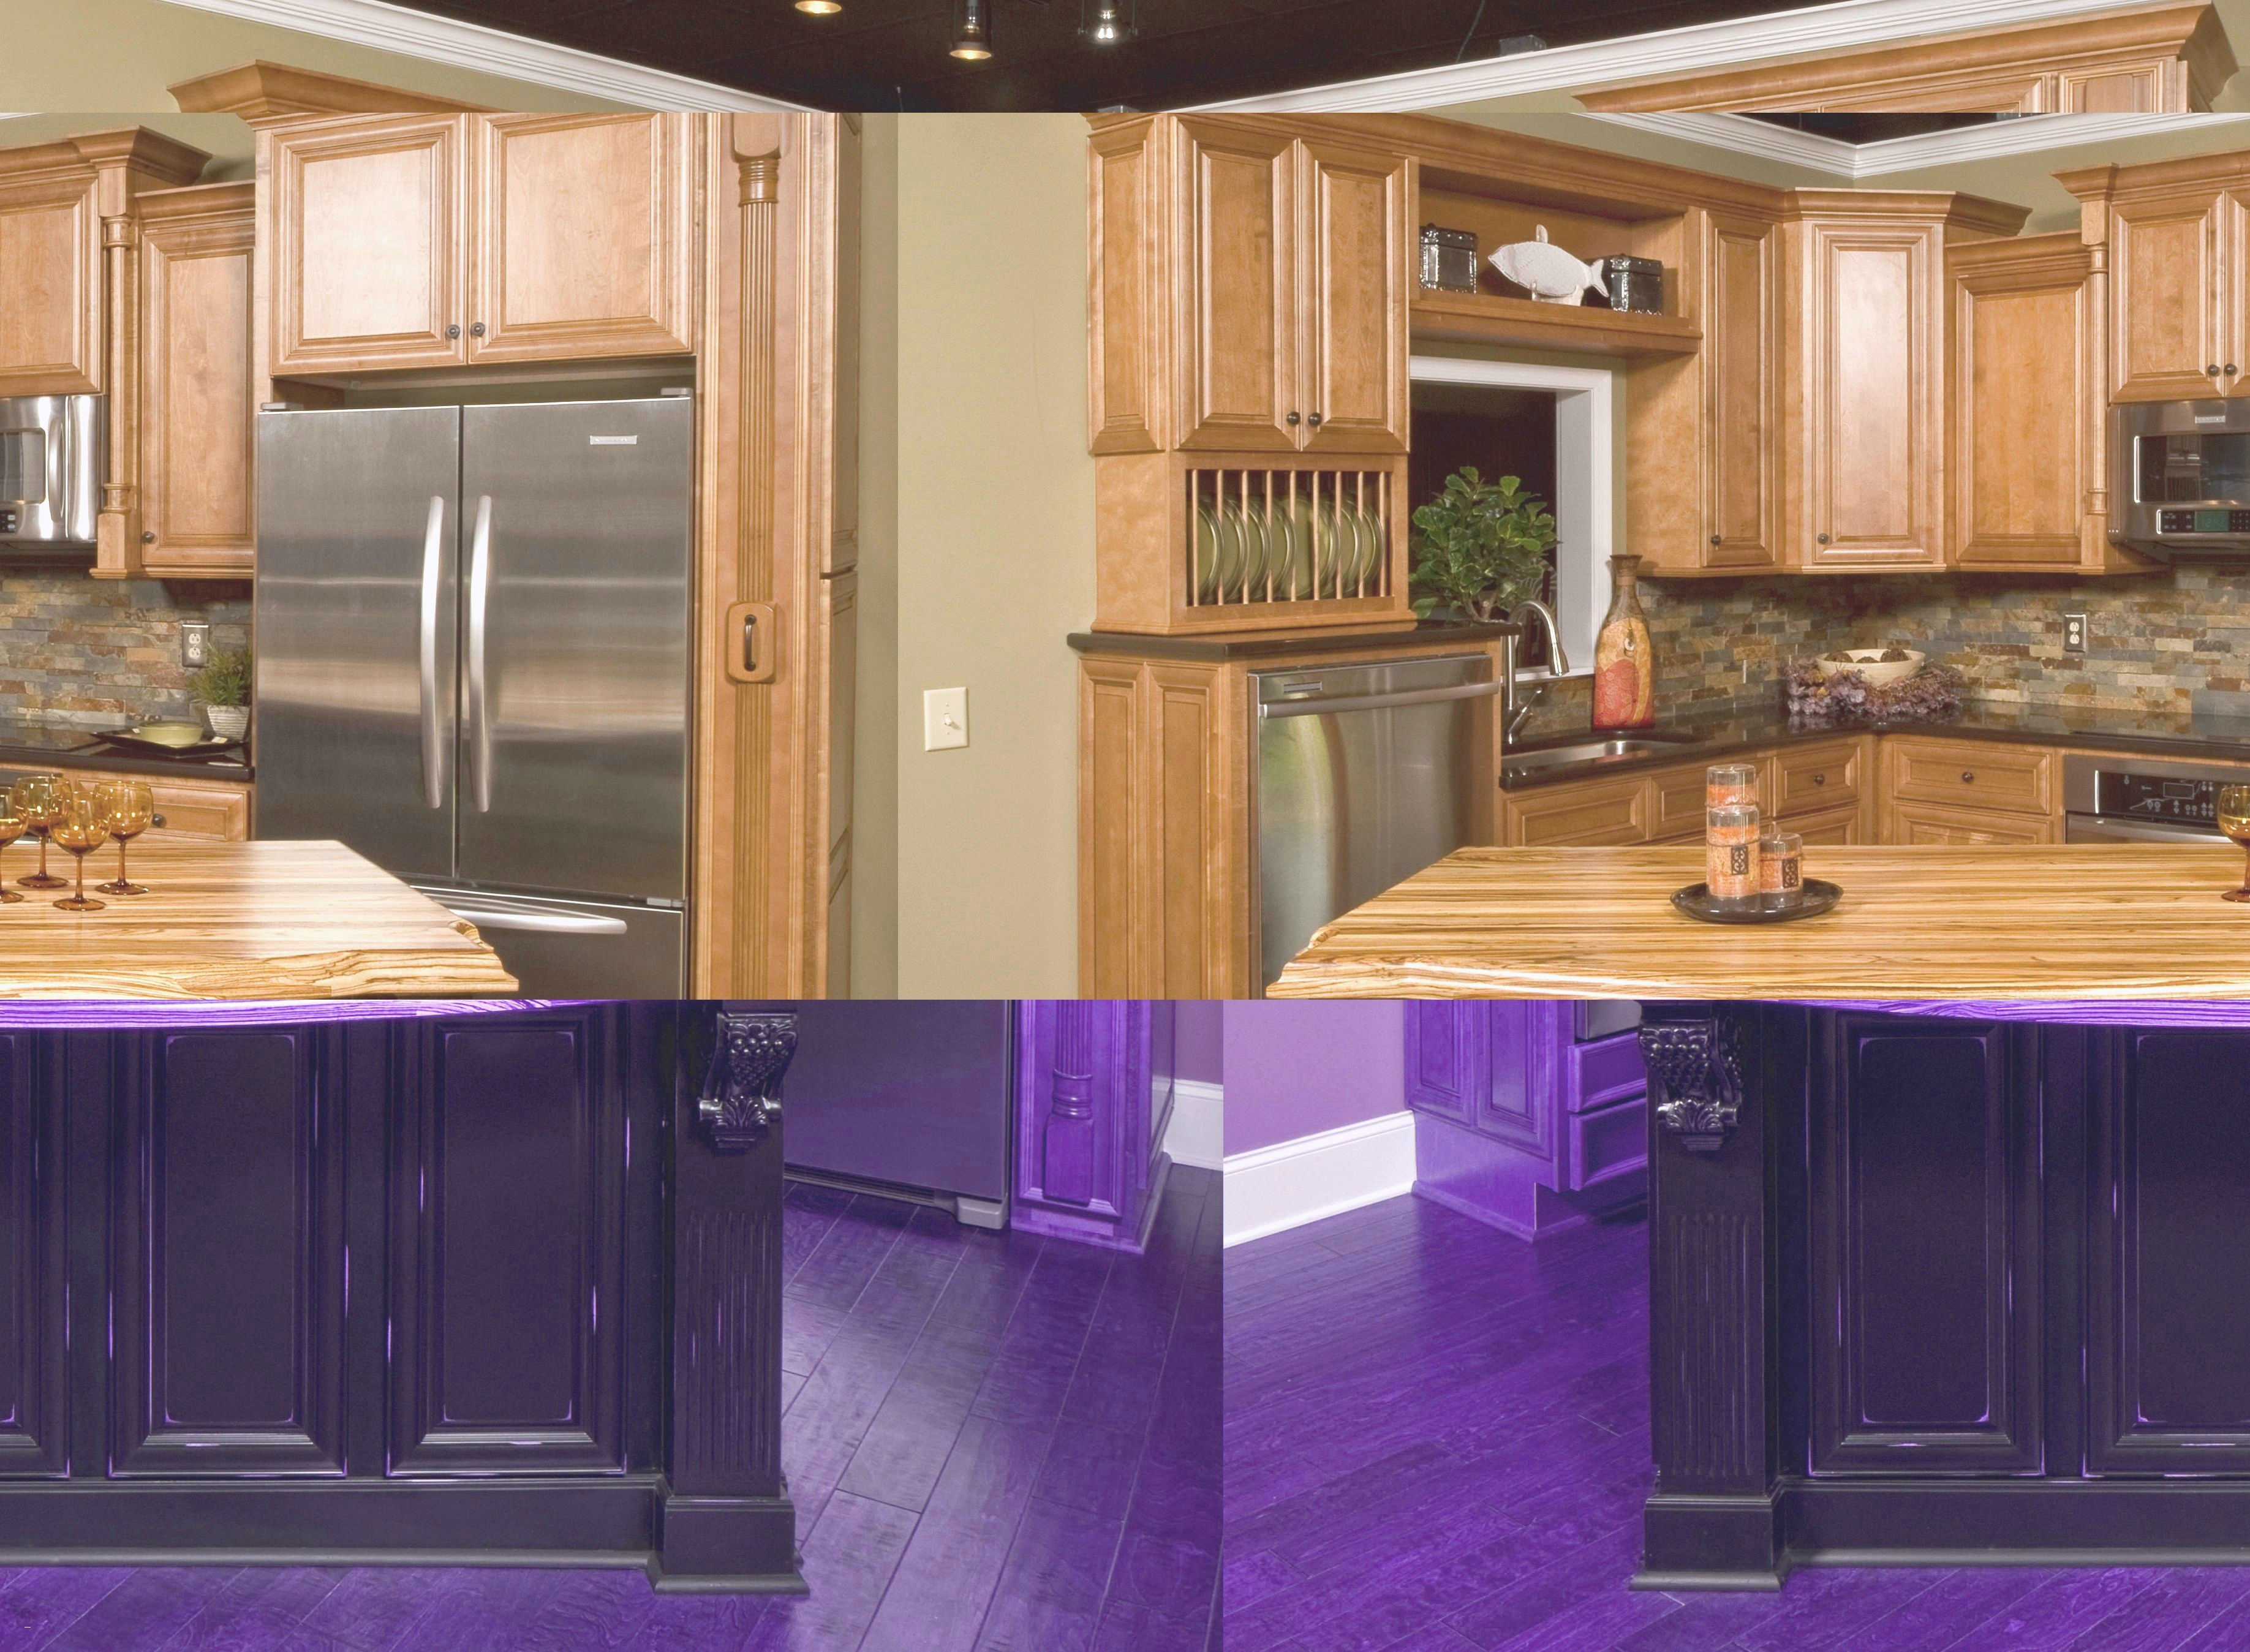 gr hardwood floors of how much are new kitchen cabinets inspirational floor 40 best floor for how much are new kitchen cabinets fresh 17 new kitchen with wood floors and white cabinets